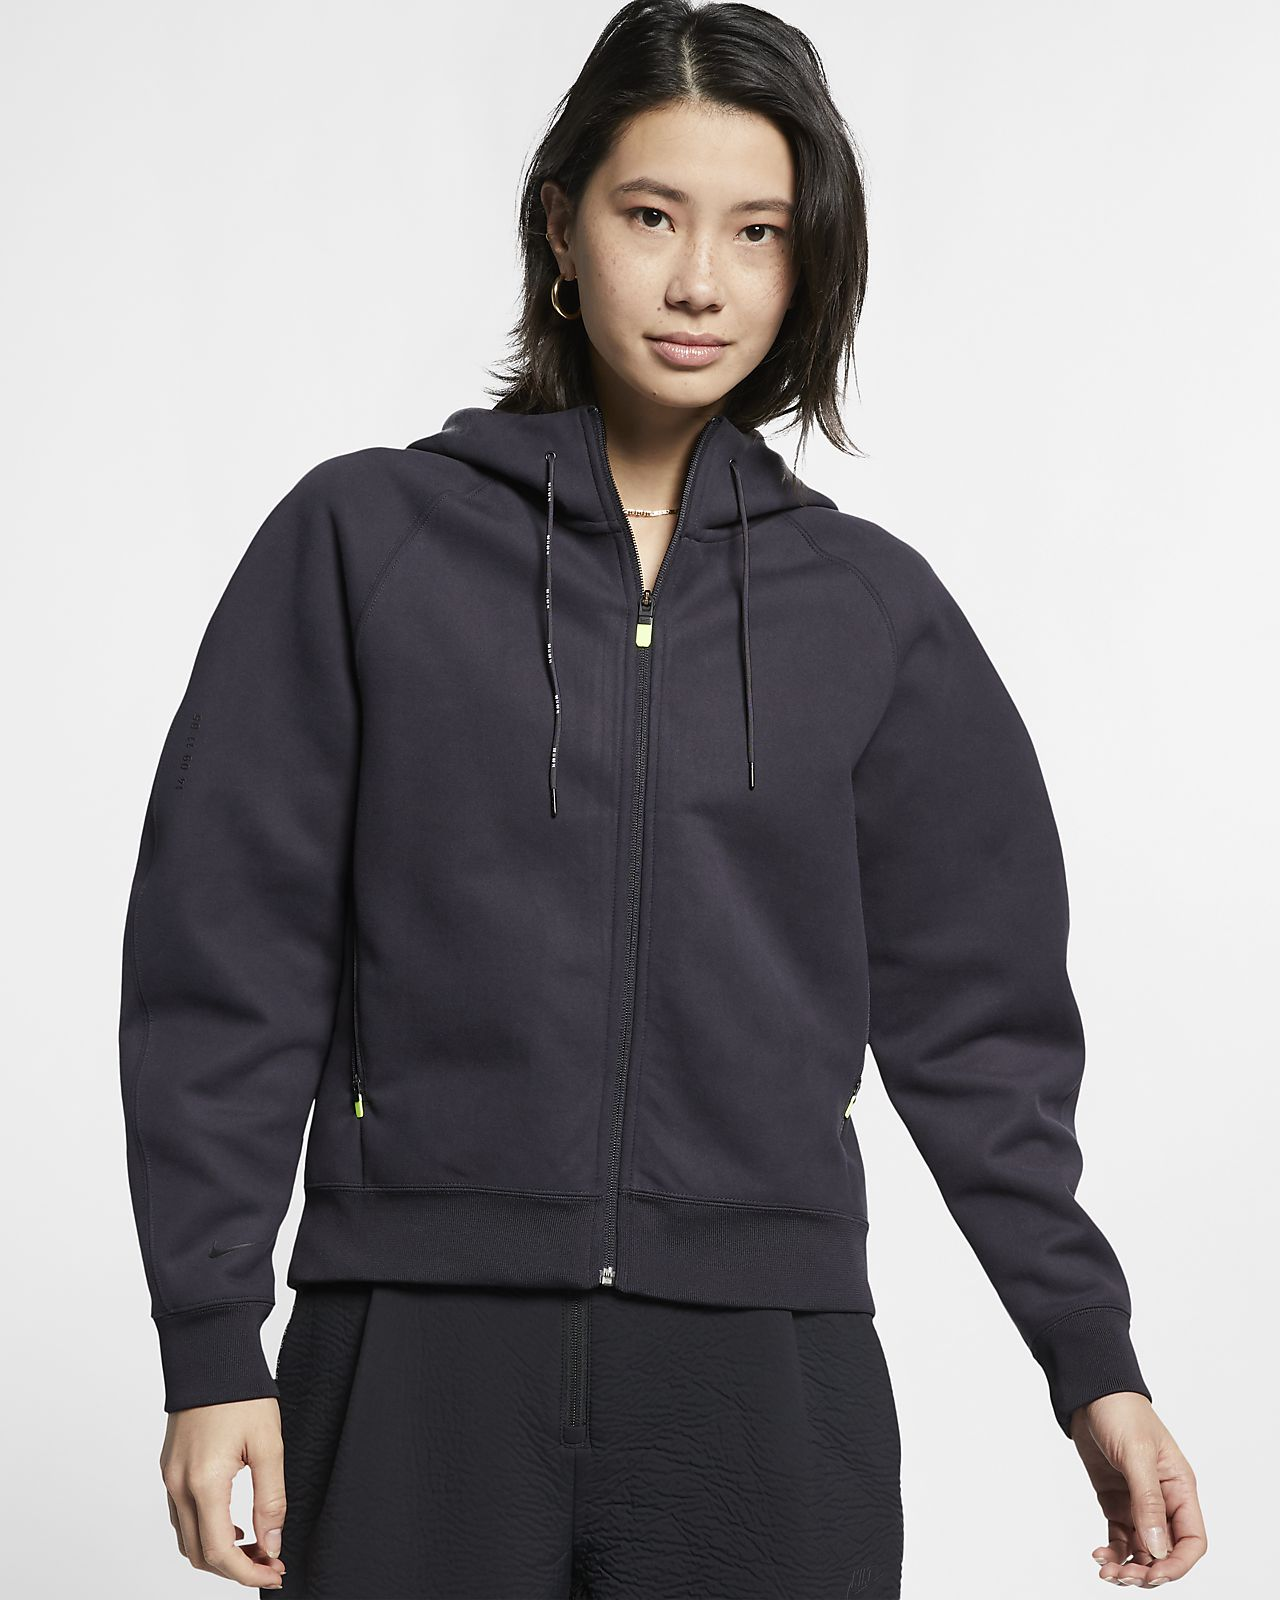 Nike Sportswear Tech Pack Women's Full Zip Fleece Hoodie